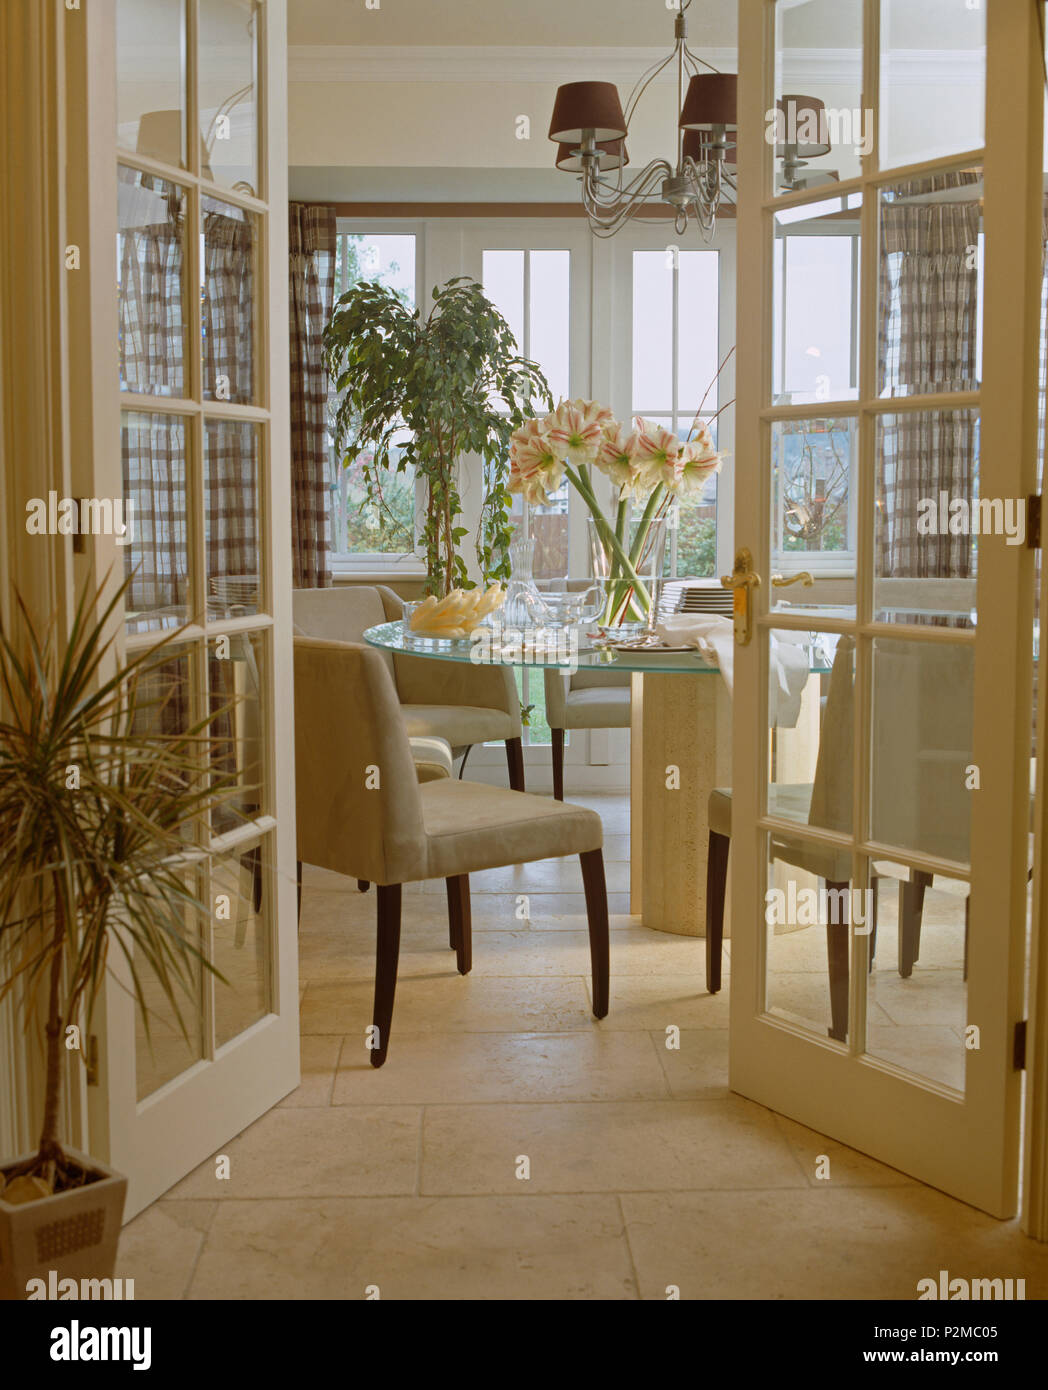 Glazed Double Doors Open To Modern Dining Room With Cream Upholstered Chairs At Glass Table